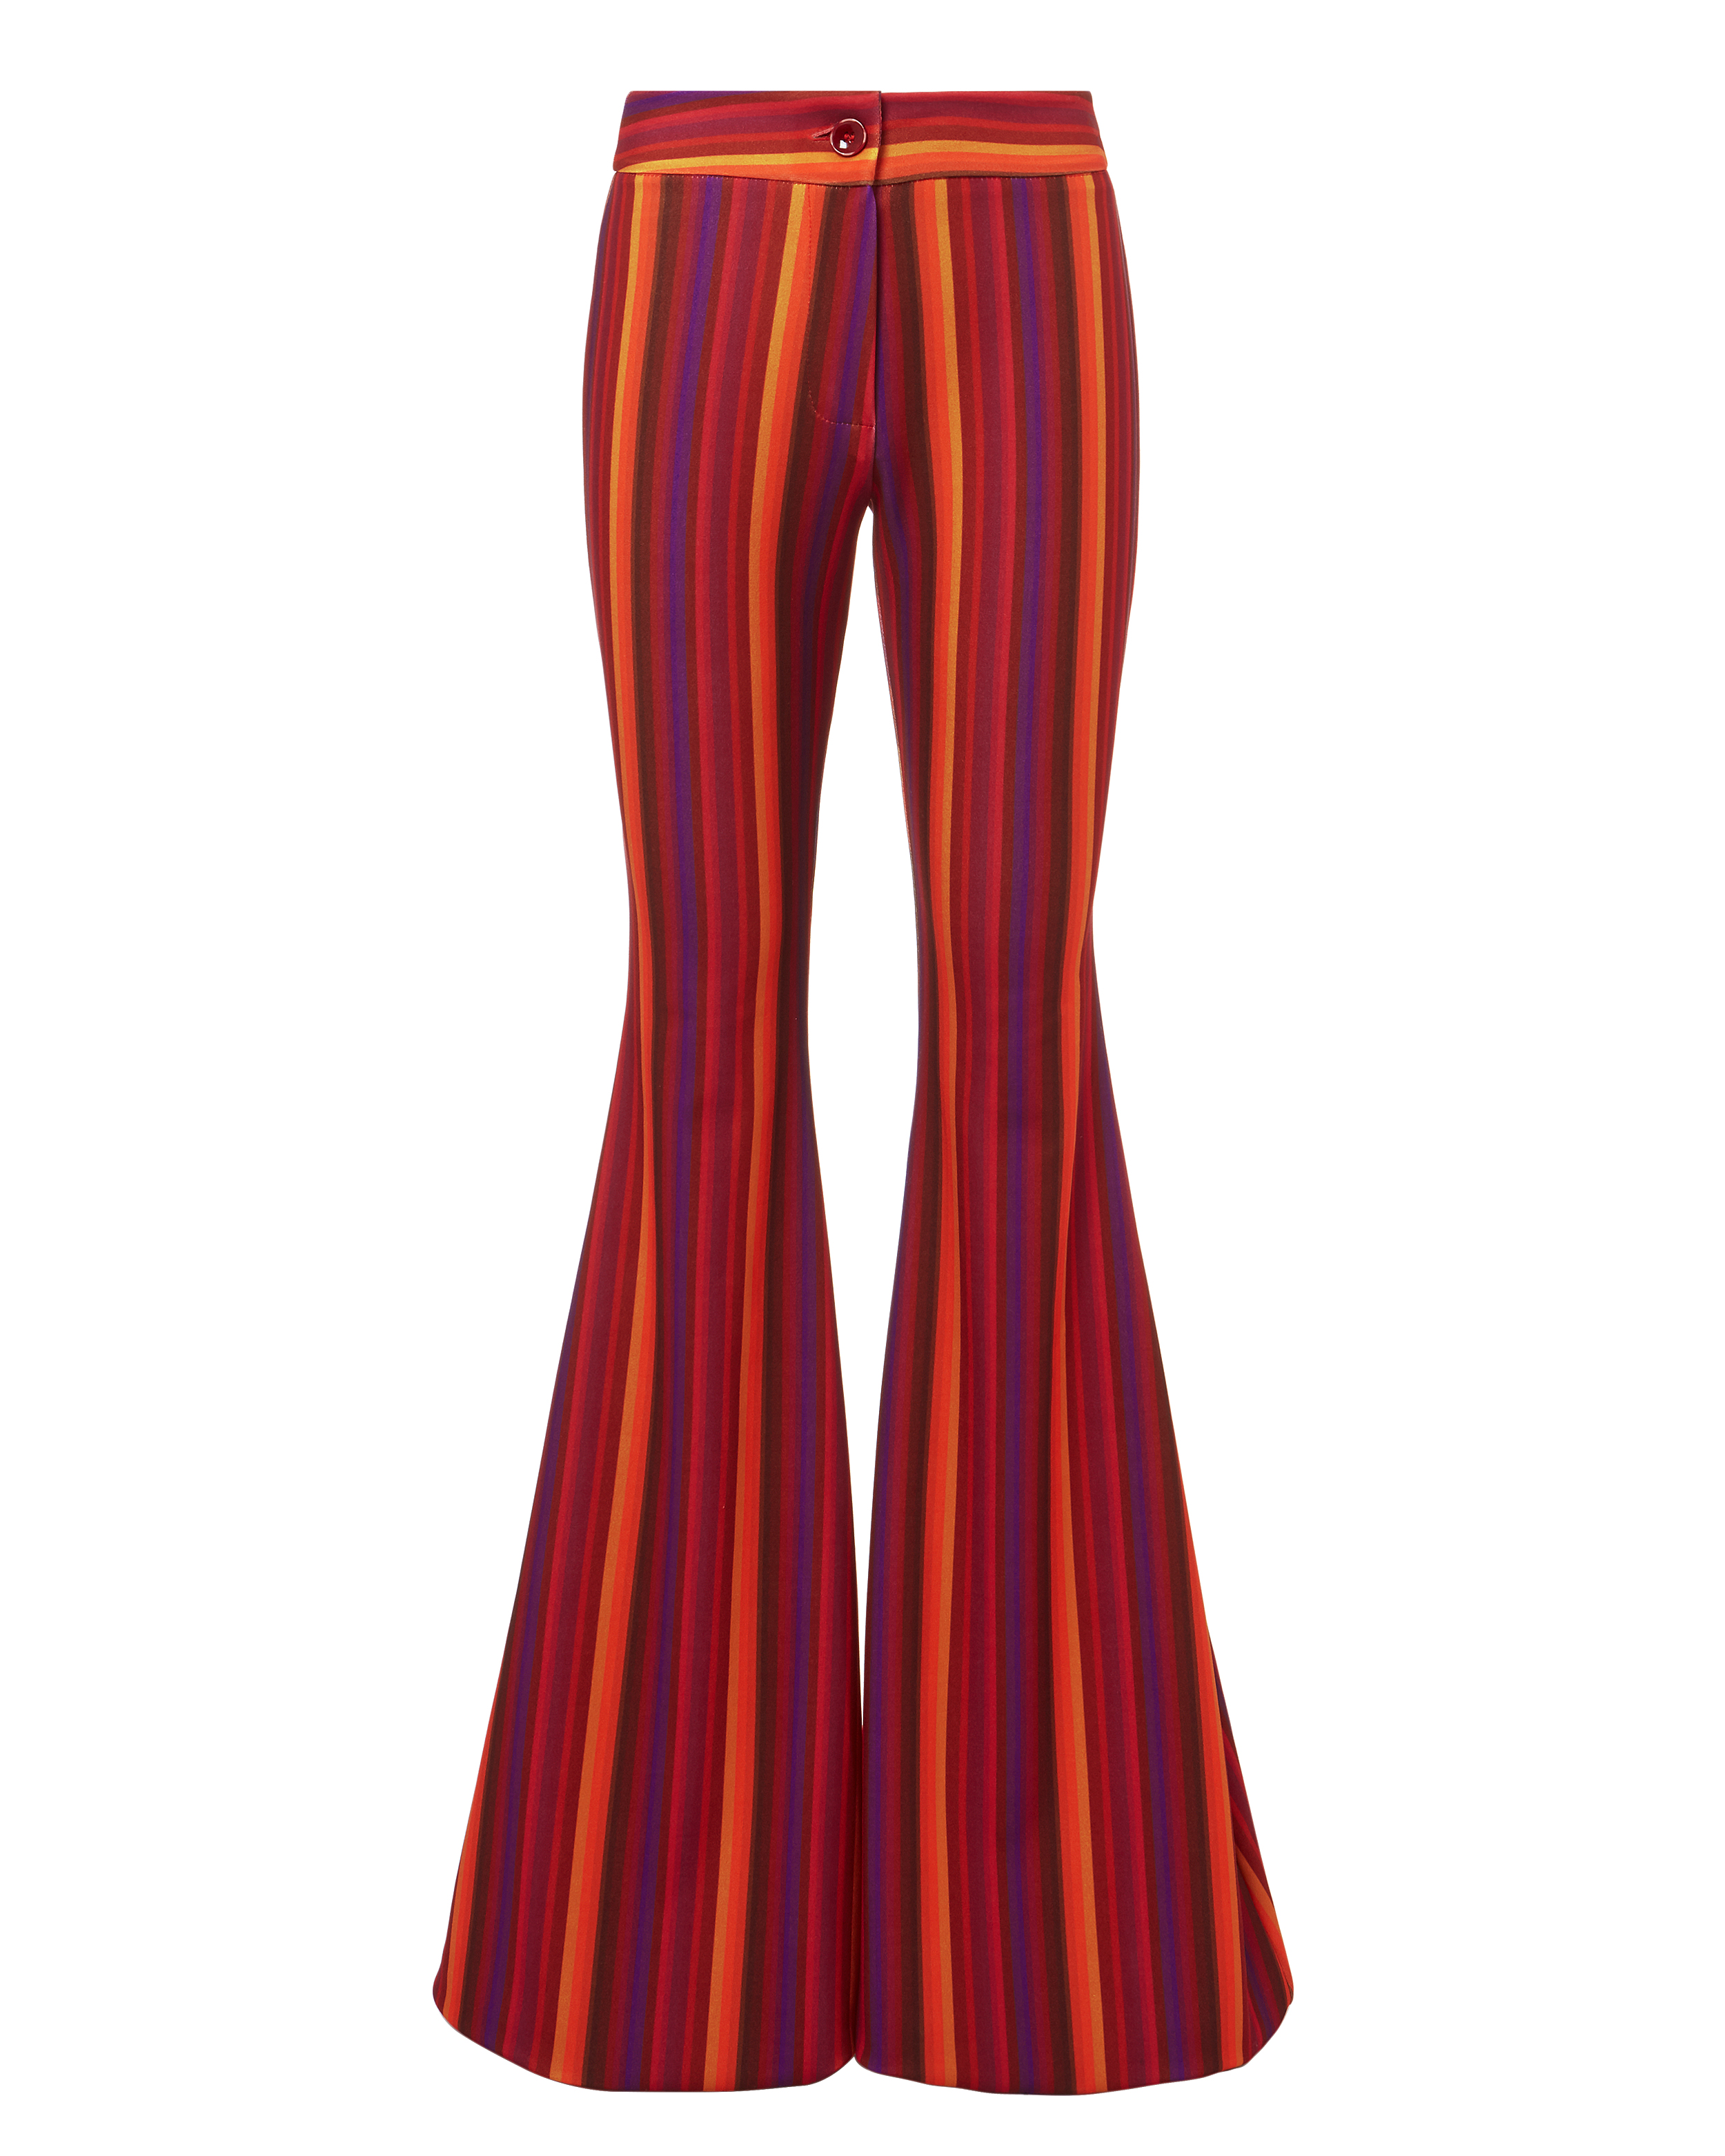 Woodstock Striped Flare Pants by C'est La V